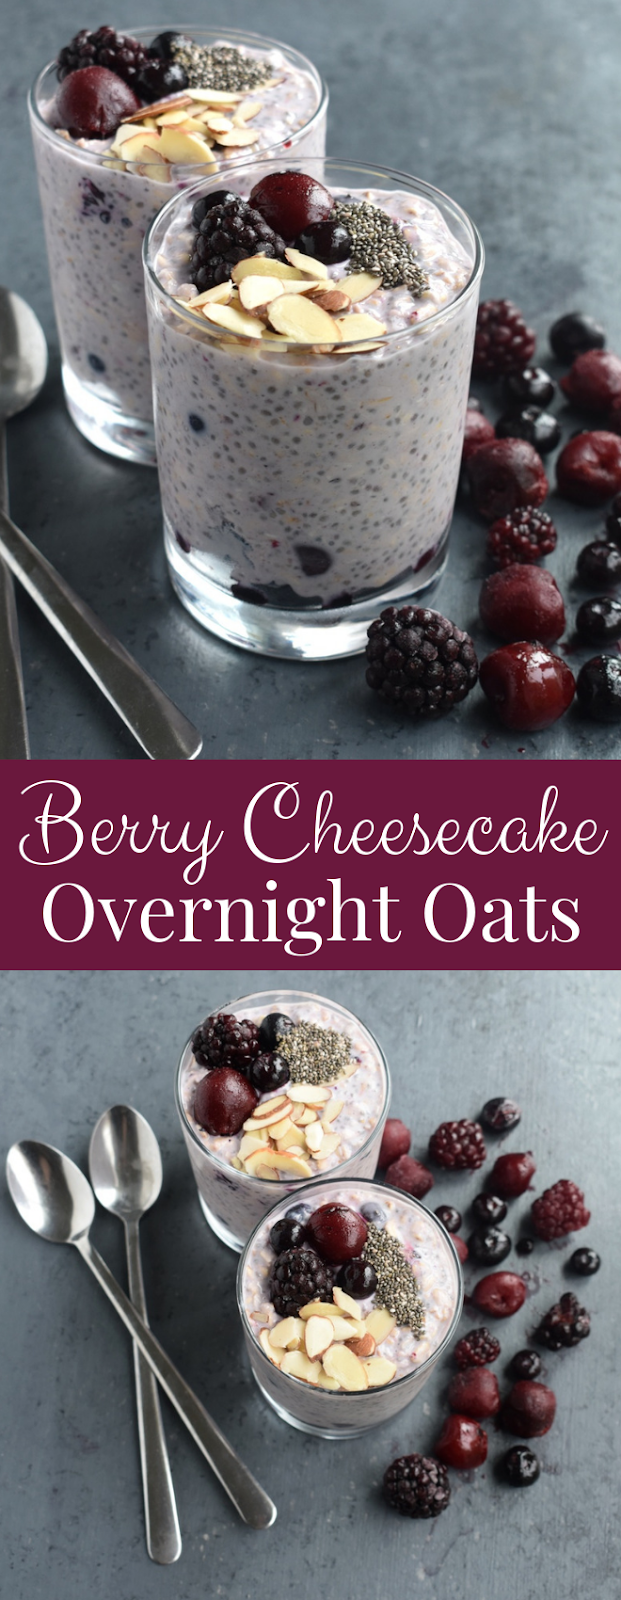 Berry Cheesecake Overnight Oats Recipe